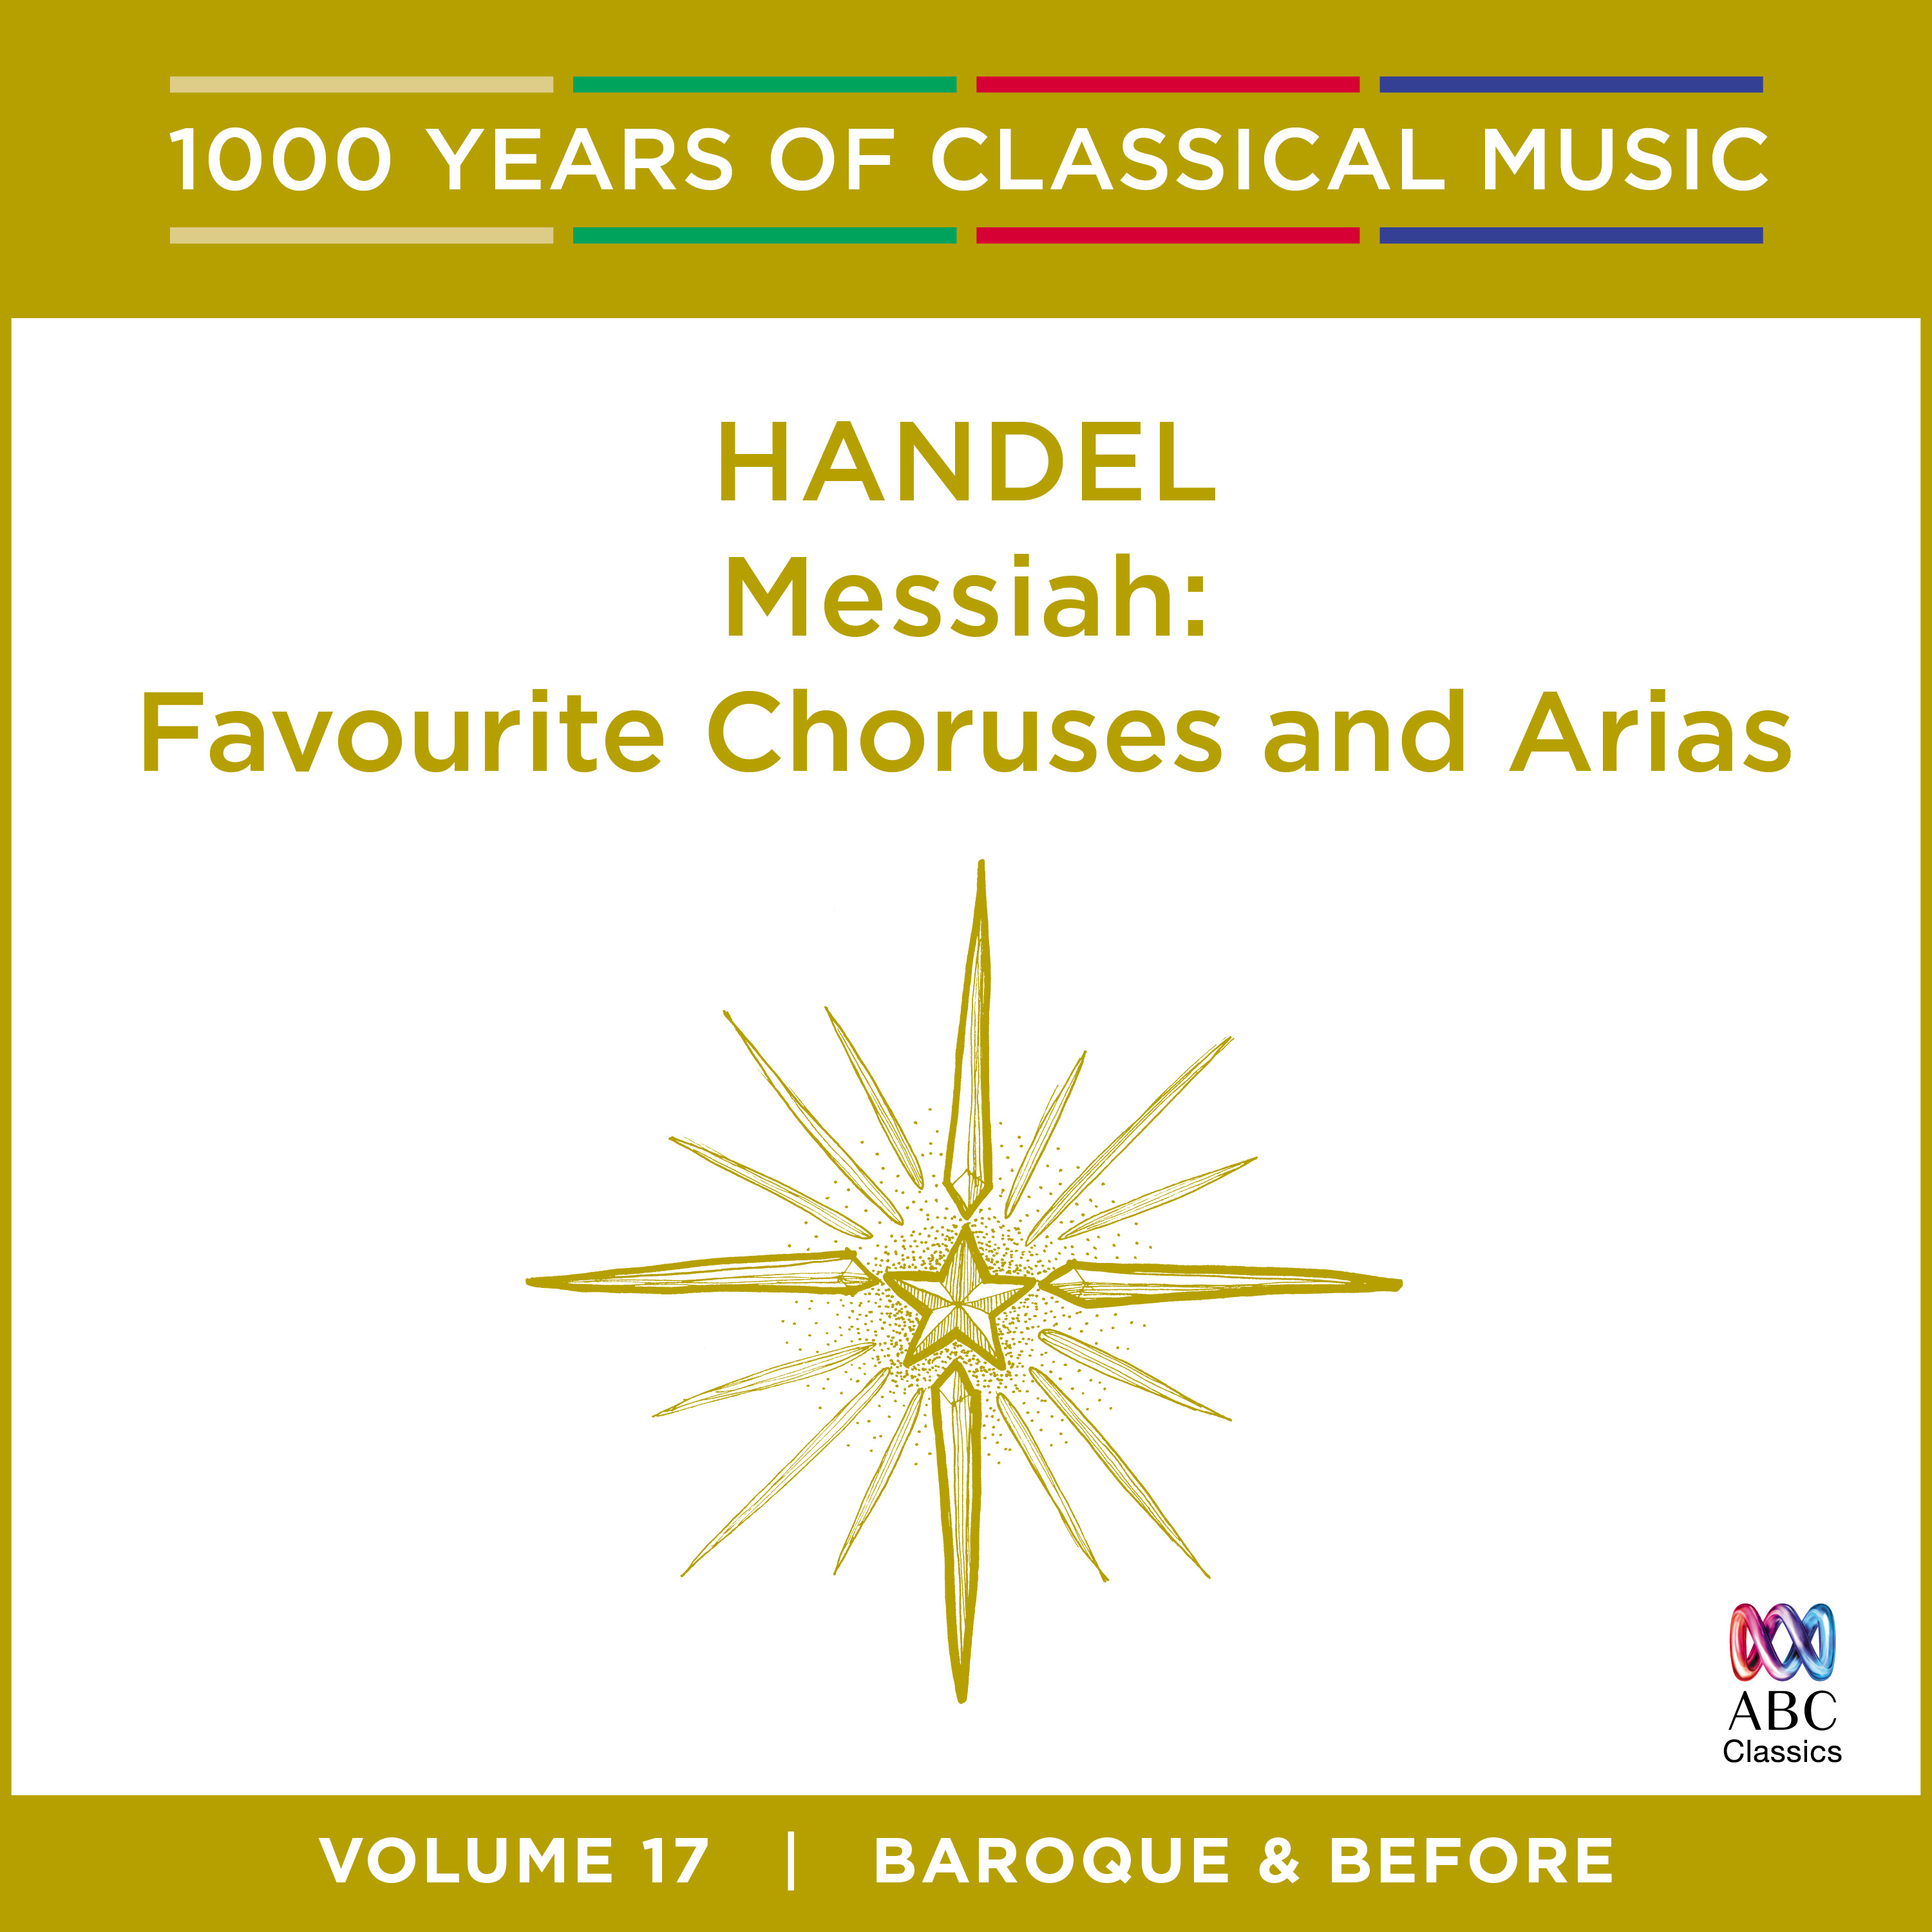 ABC Music | Handel: Messiah [1000 Years of Classical Music